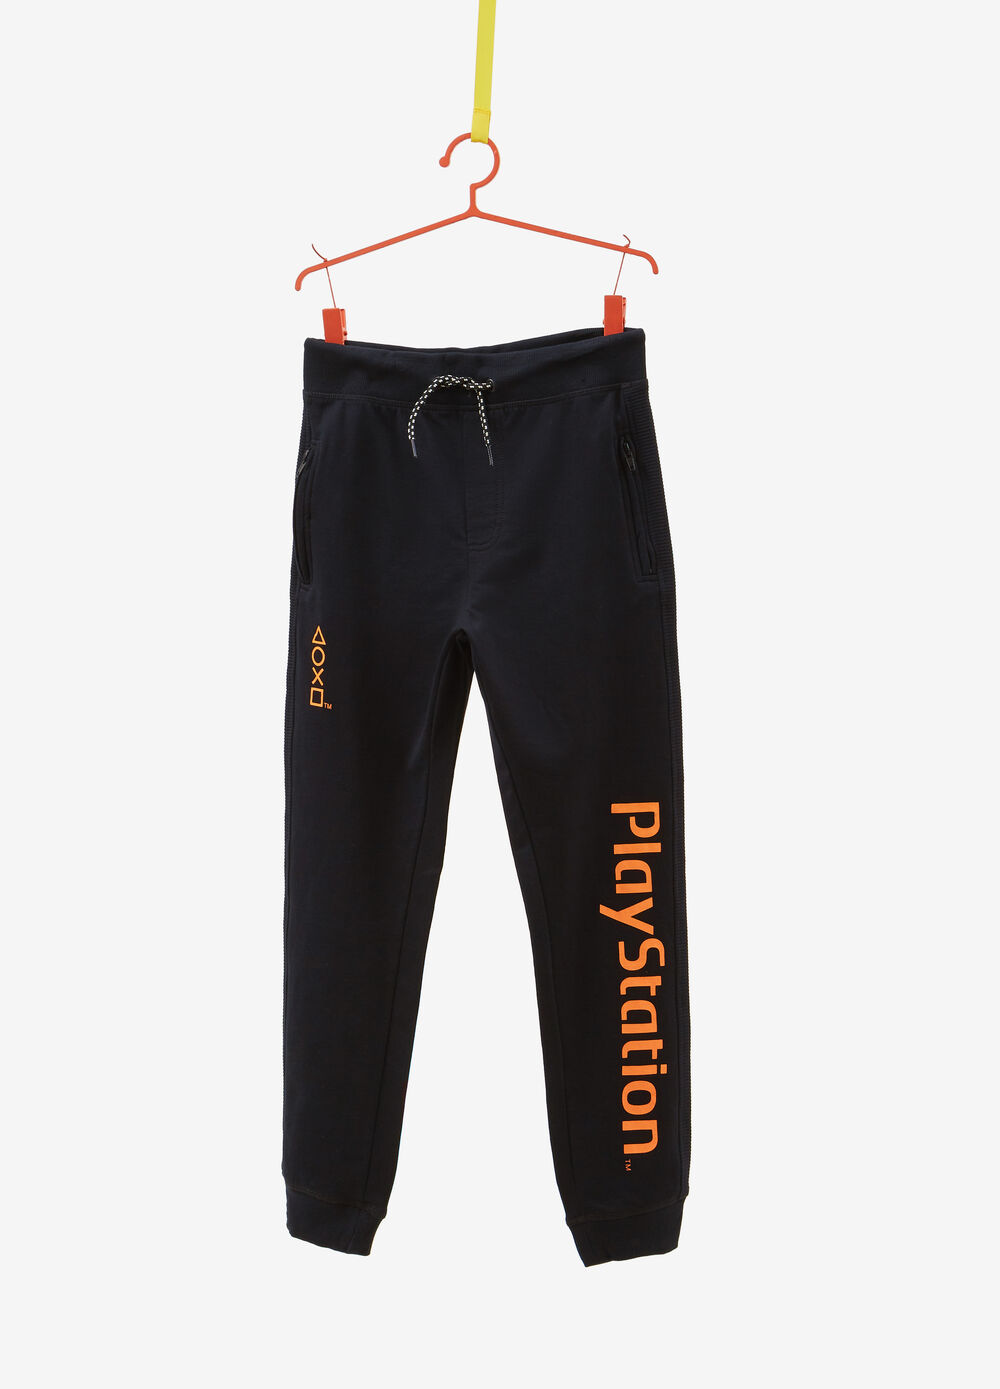 Trousers in 100% cotton with Playstation print